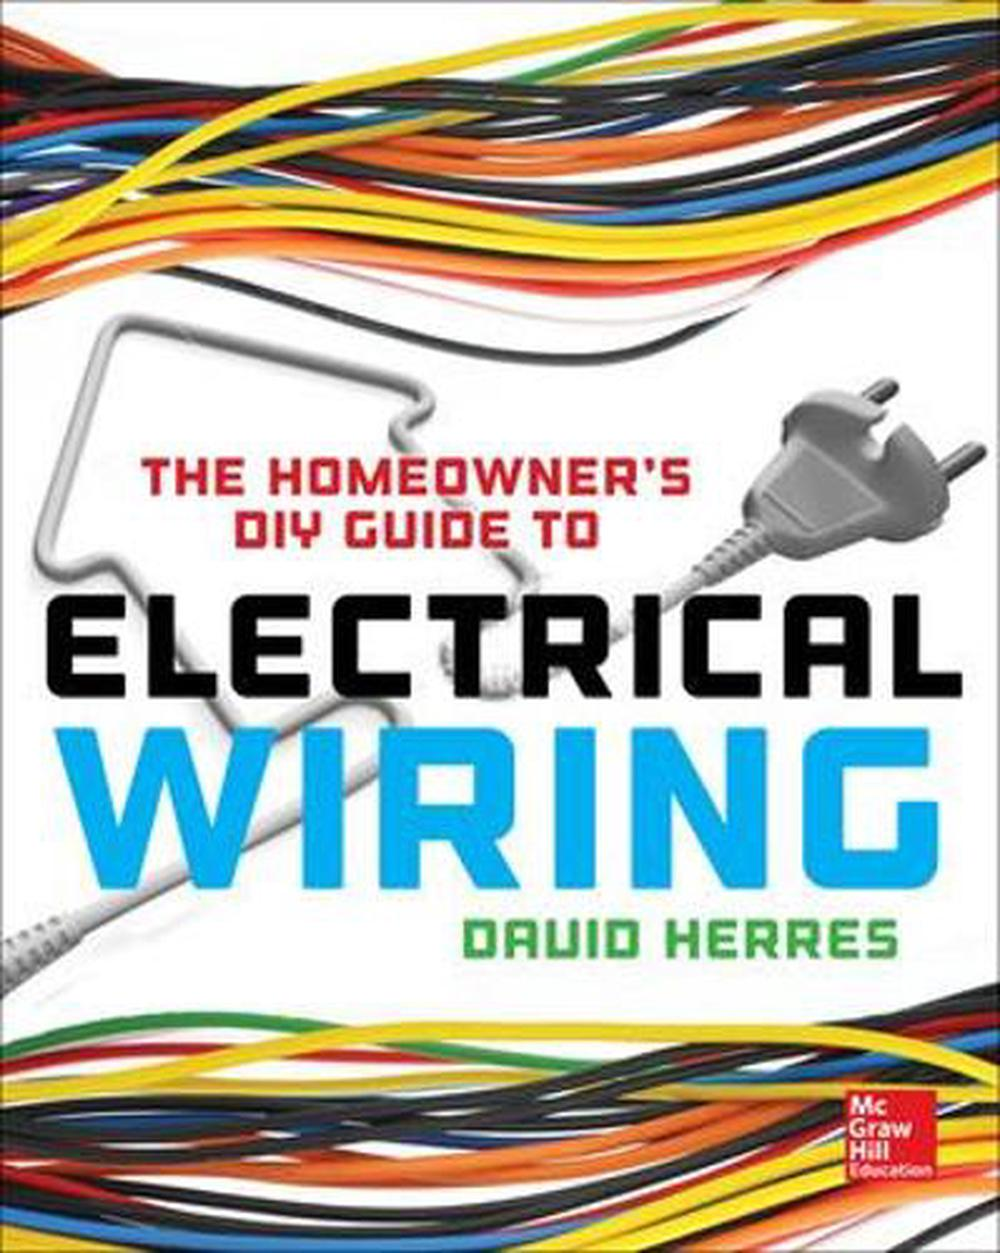 medium resolution of the homeowner s diy guide to electrical wiring by david herres paperback 9780071844758 buy online at the nile